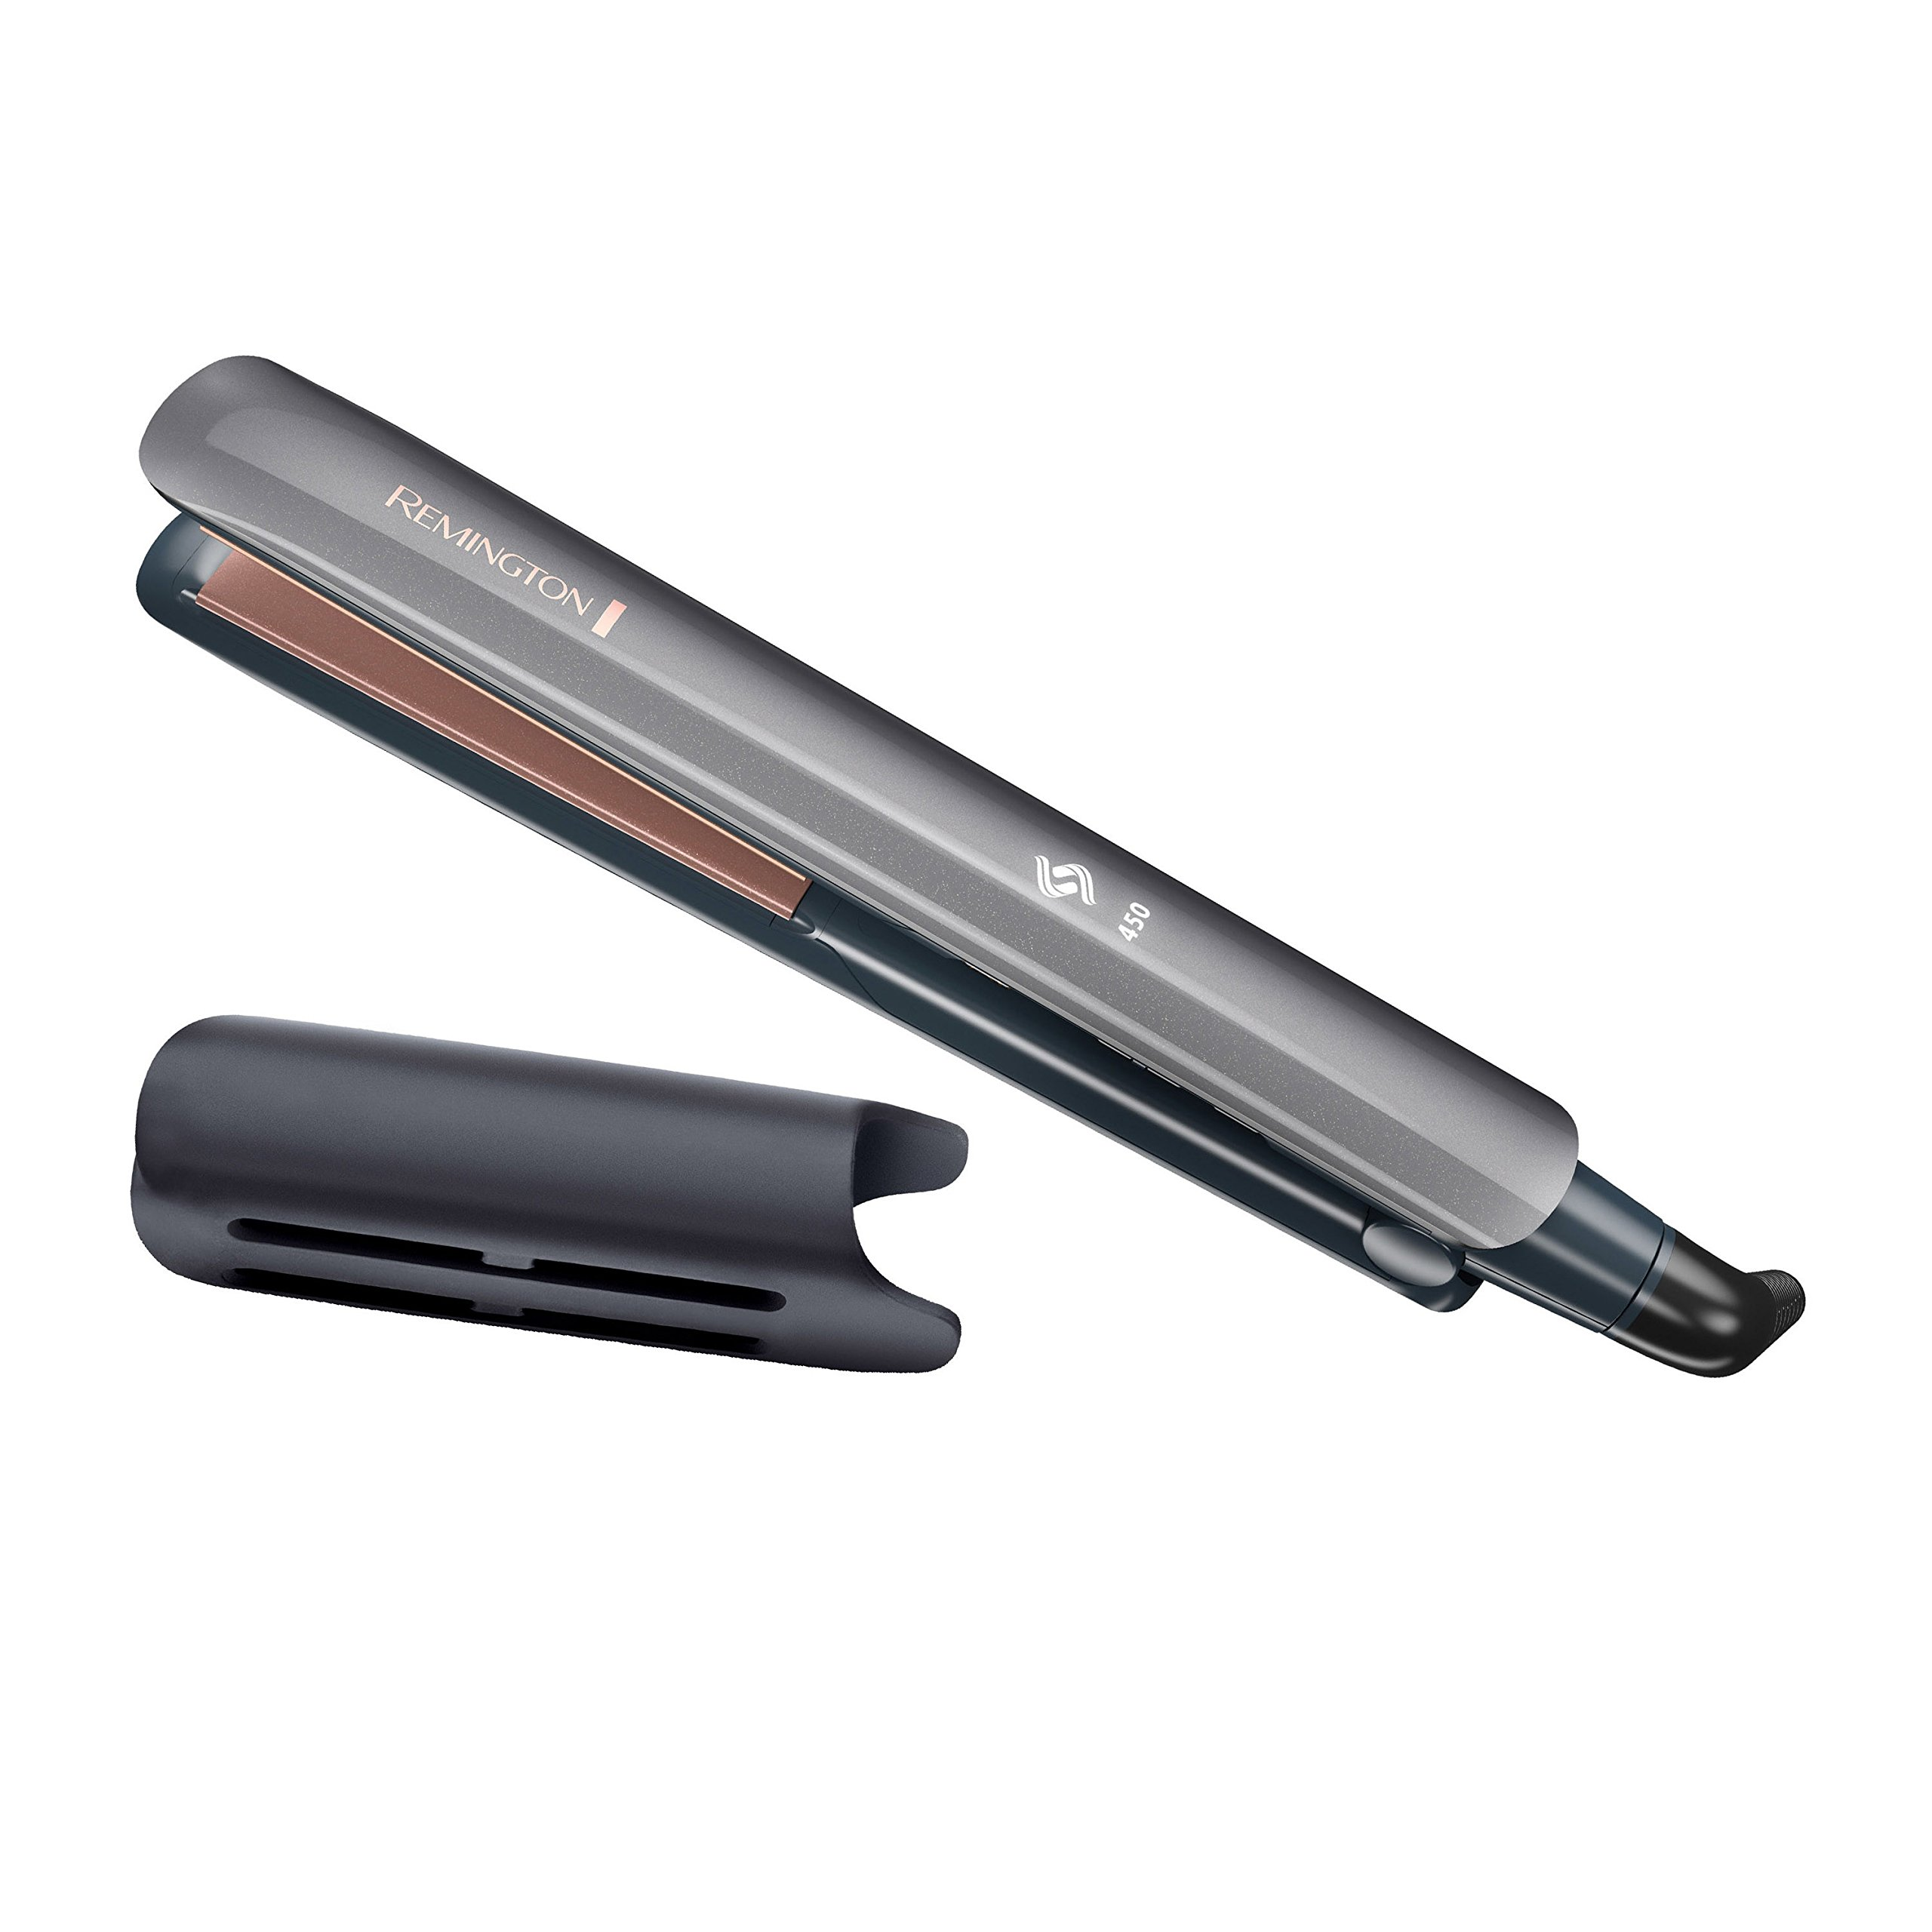 Remington S8598S Flat Iron with Smartpro Sensor Technology by Remington